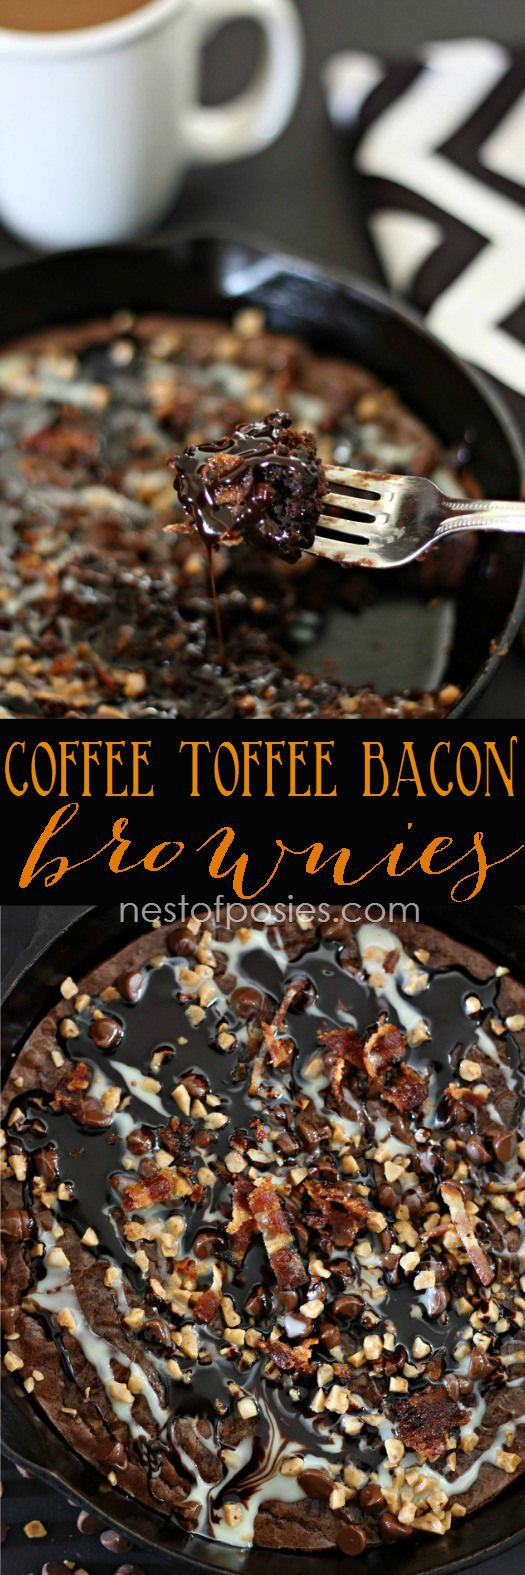 Coffee Toffee Bacon Brownies.  Made with a brownie mix + a few added ingredients.  So easy and delicious!